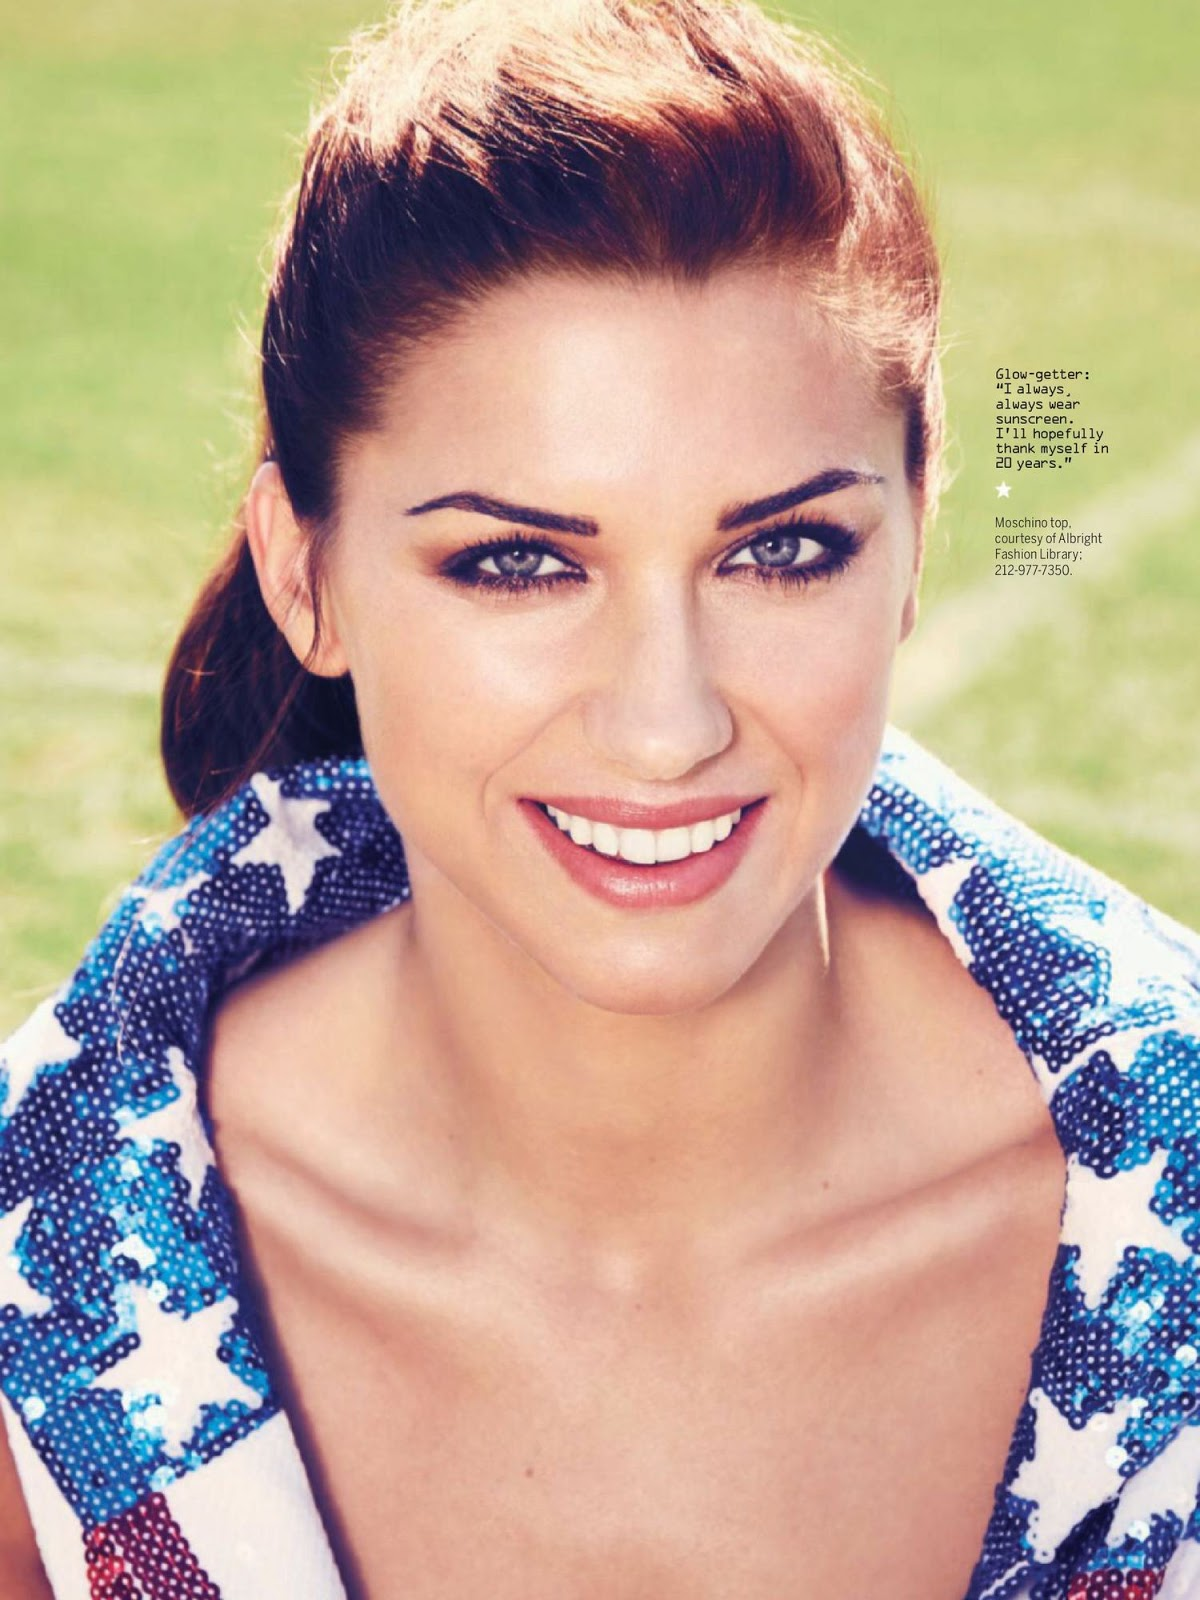 alex morgan - photo #4